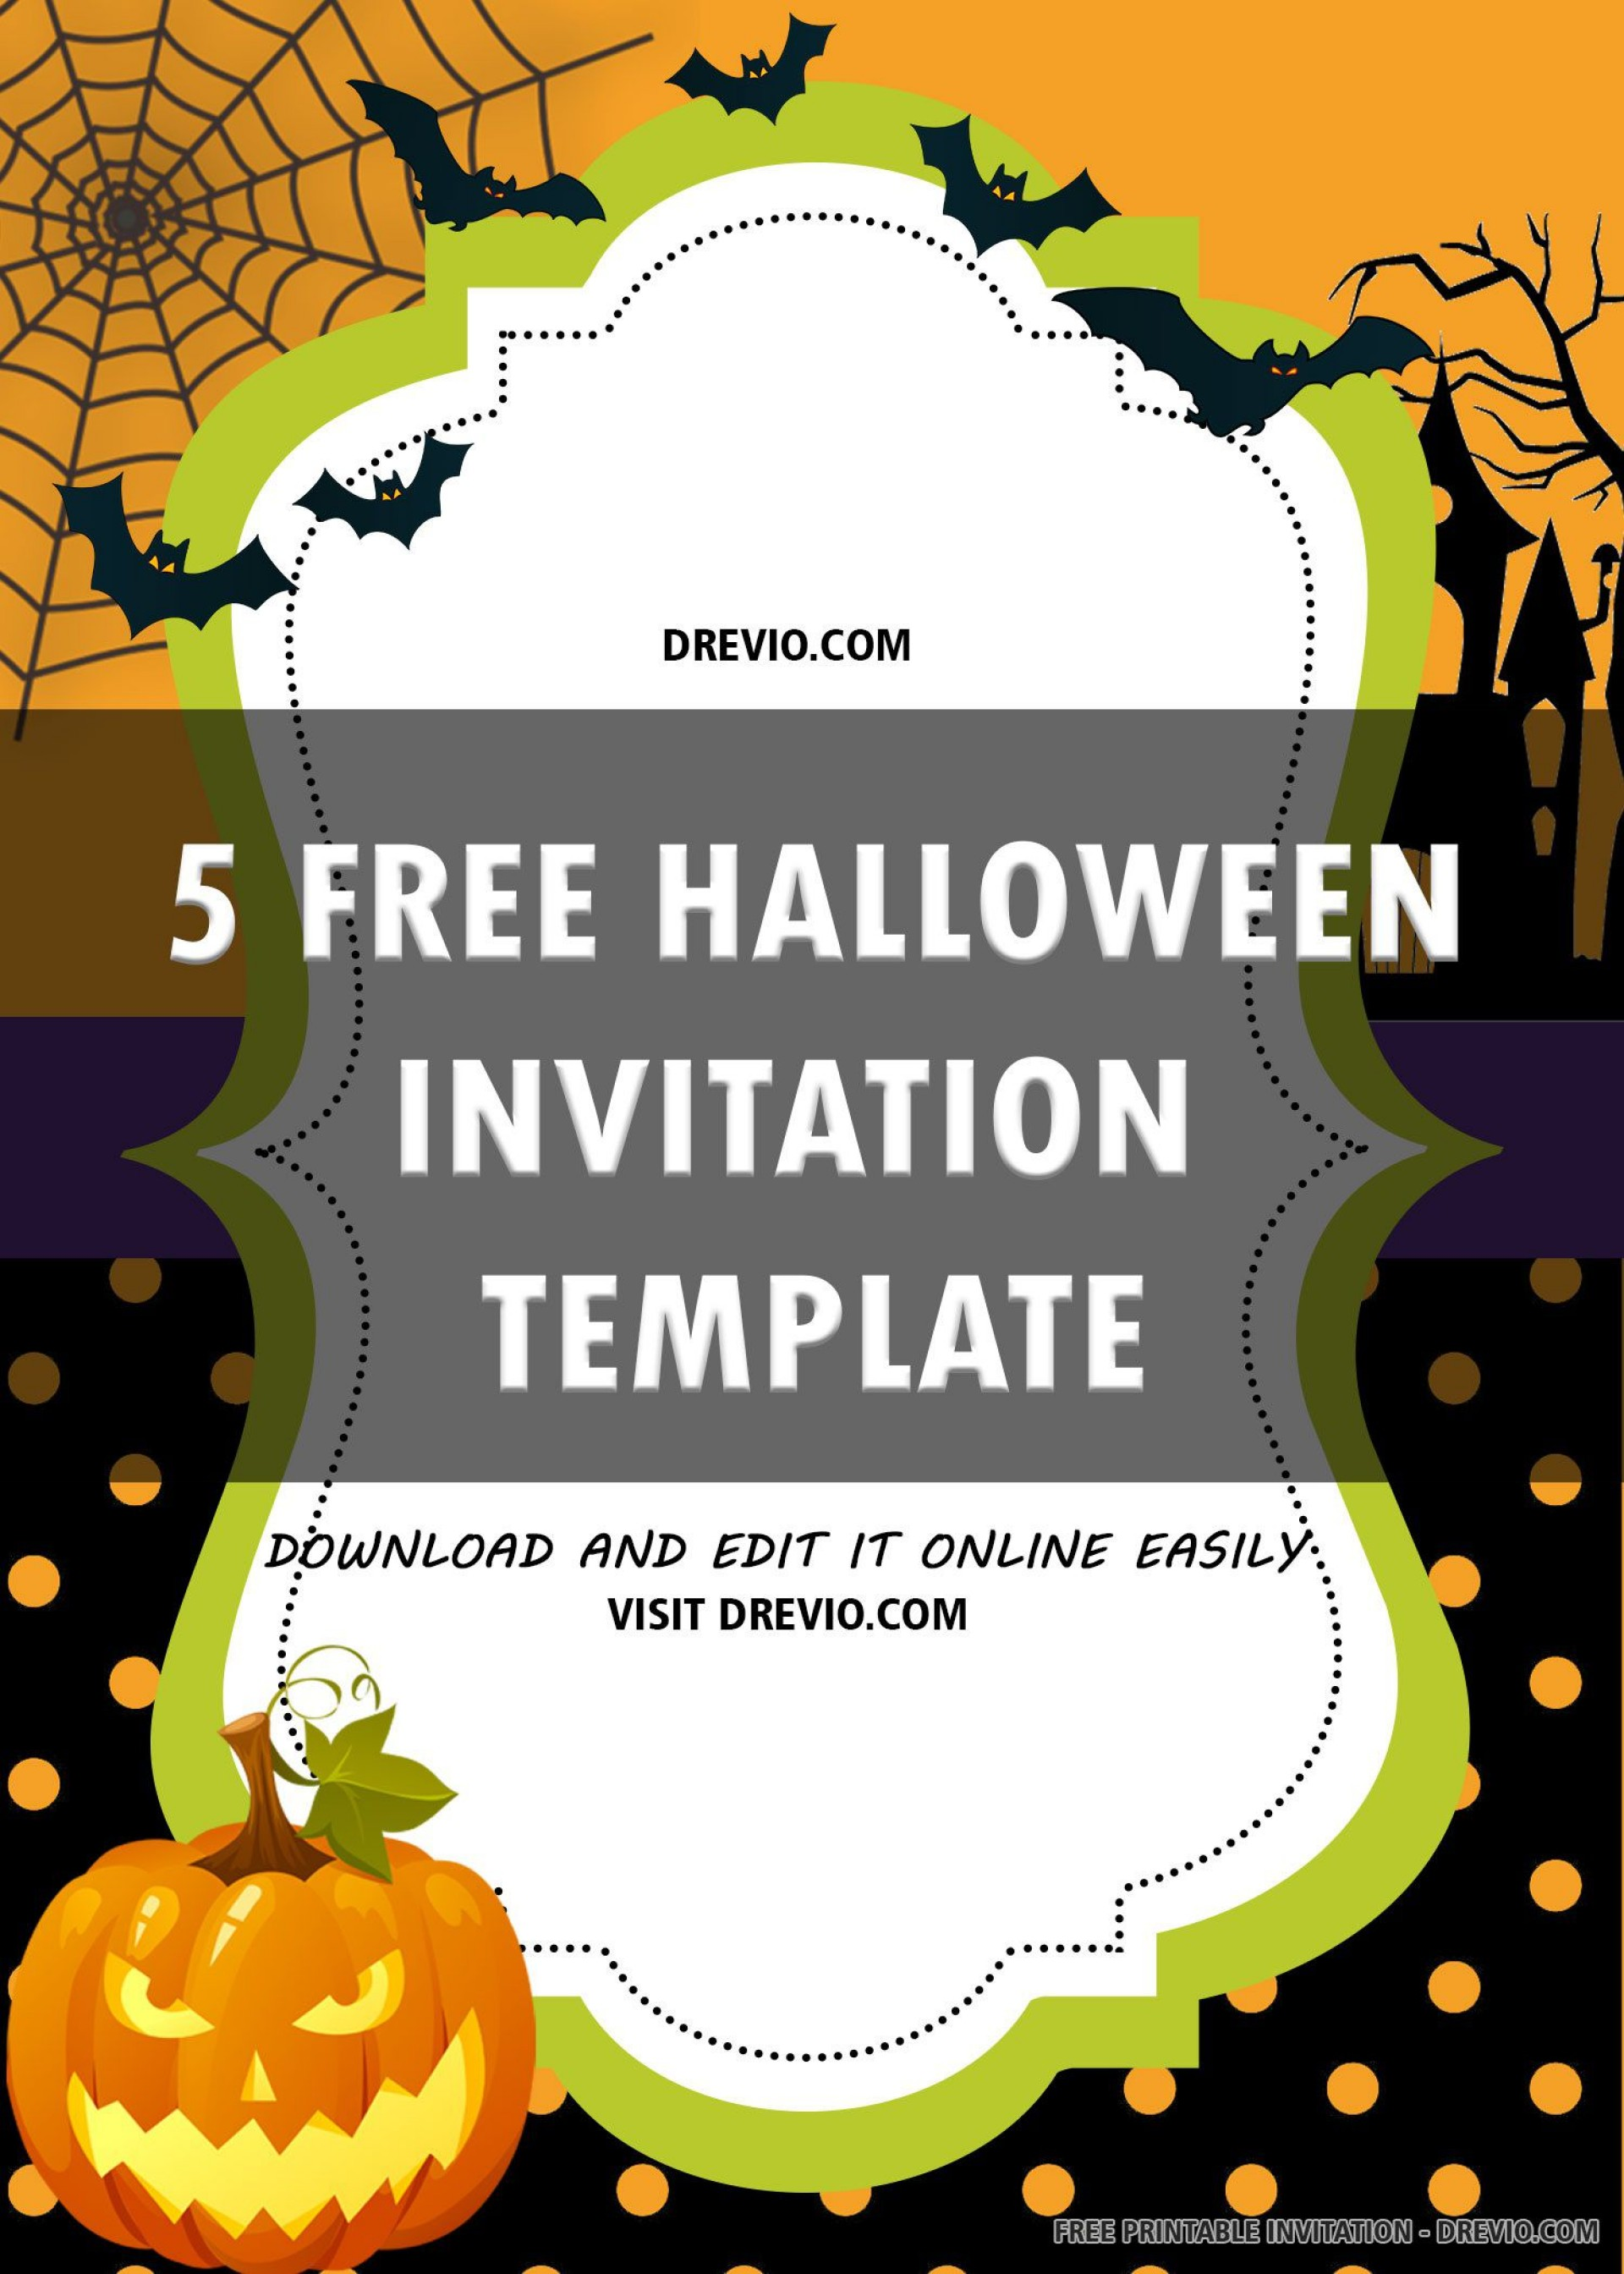 006 Excellent Halloween Party Invitation Template Concept  Templates Scary Spooky1920